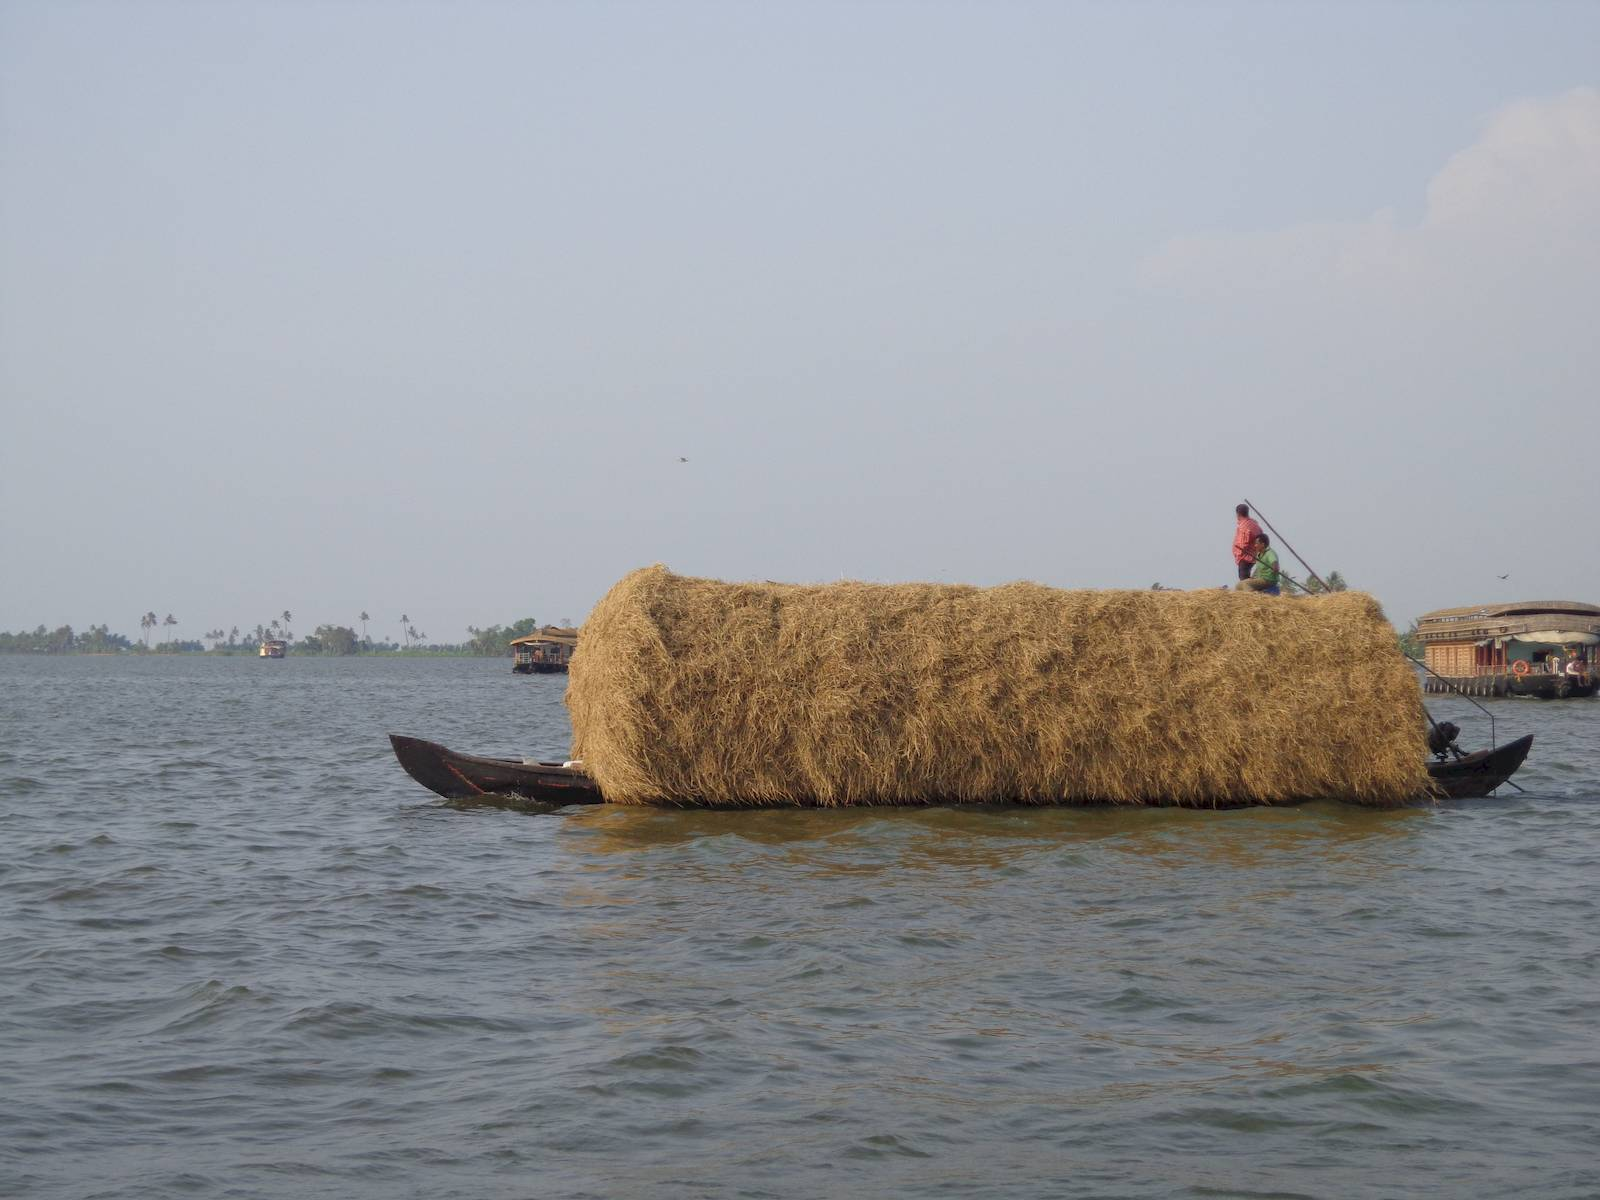 Locals transporting hay on canoe.